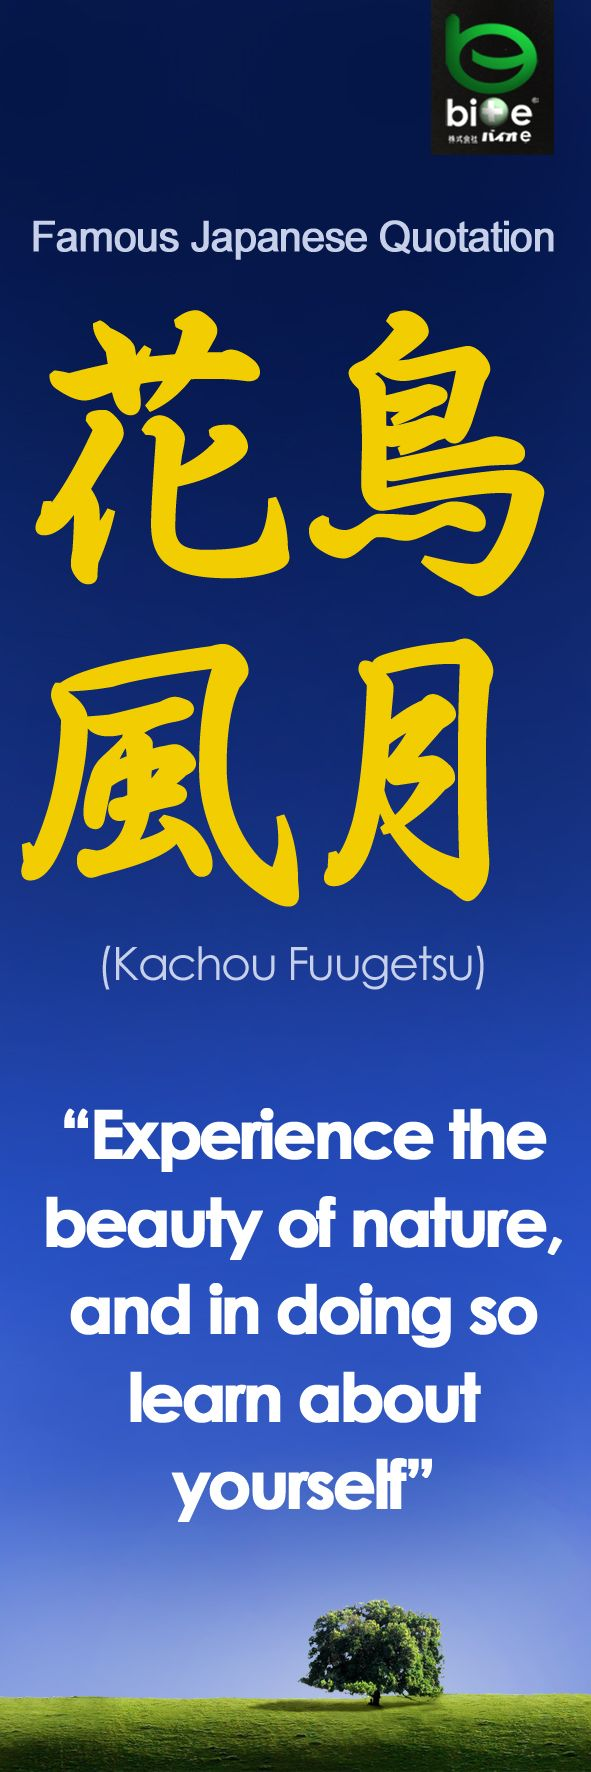 A Famous Japanese Quote